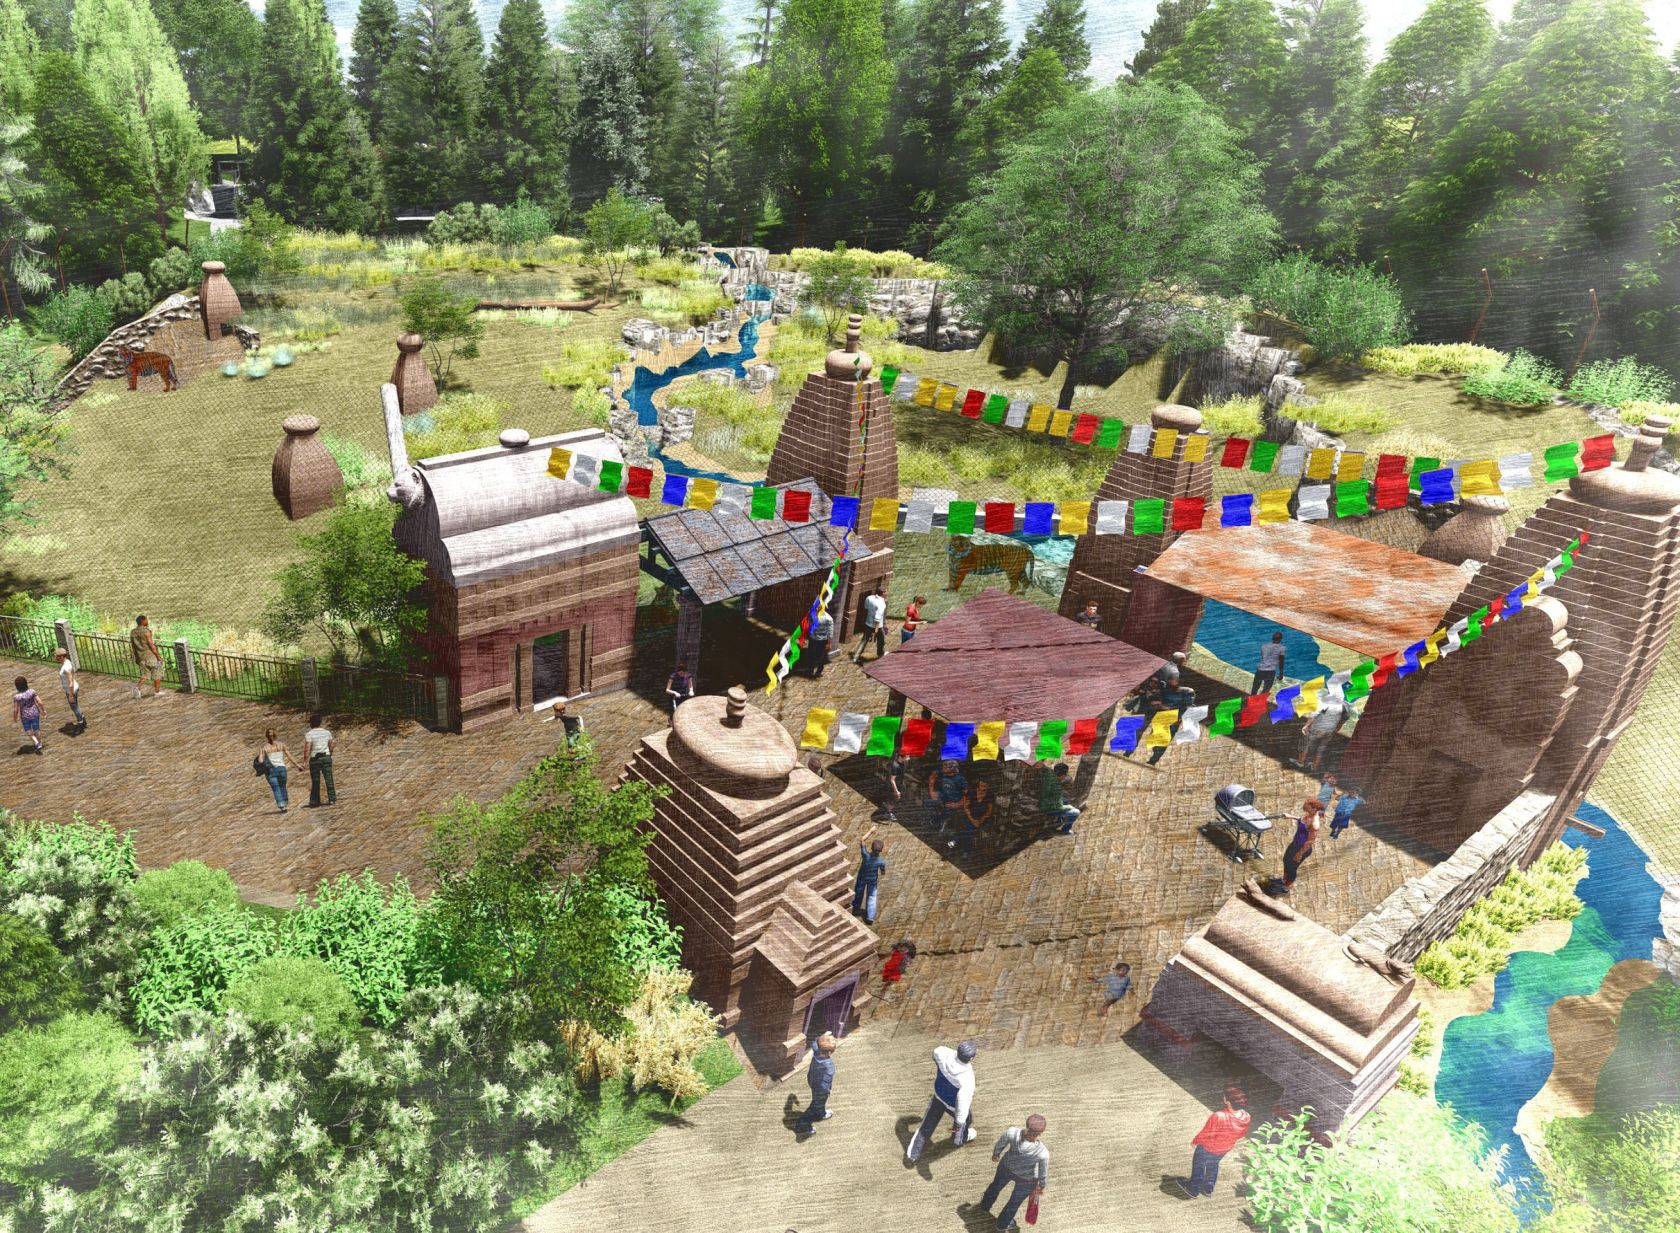 Asian Highlands exhibit & 1st phase of Omaha zoou0027s $22 million Asian Highlands exhibit to open ...